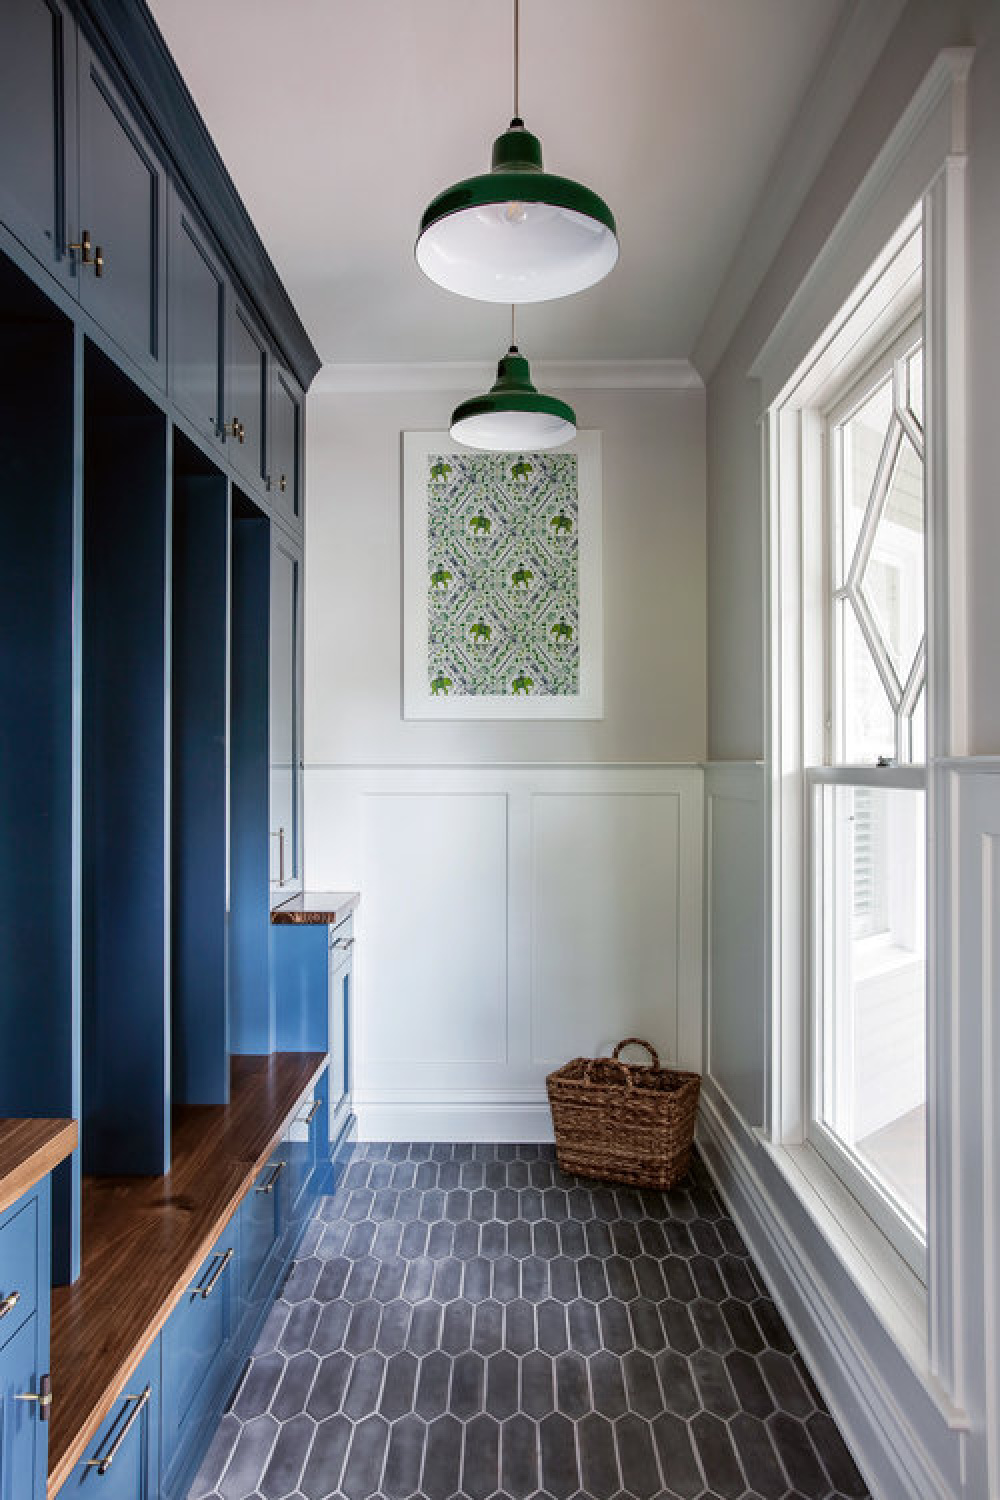 Blue painted custom cubies and cabinets in a traditional mud room by Edward Deegan Architects. #mudrooms #custommillwork #bluecabinets